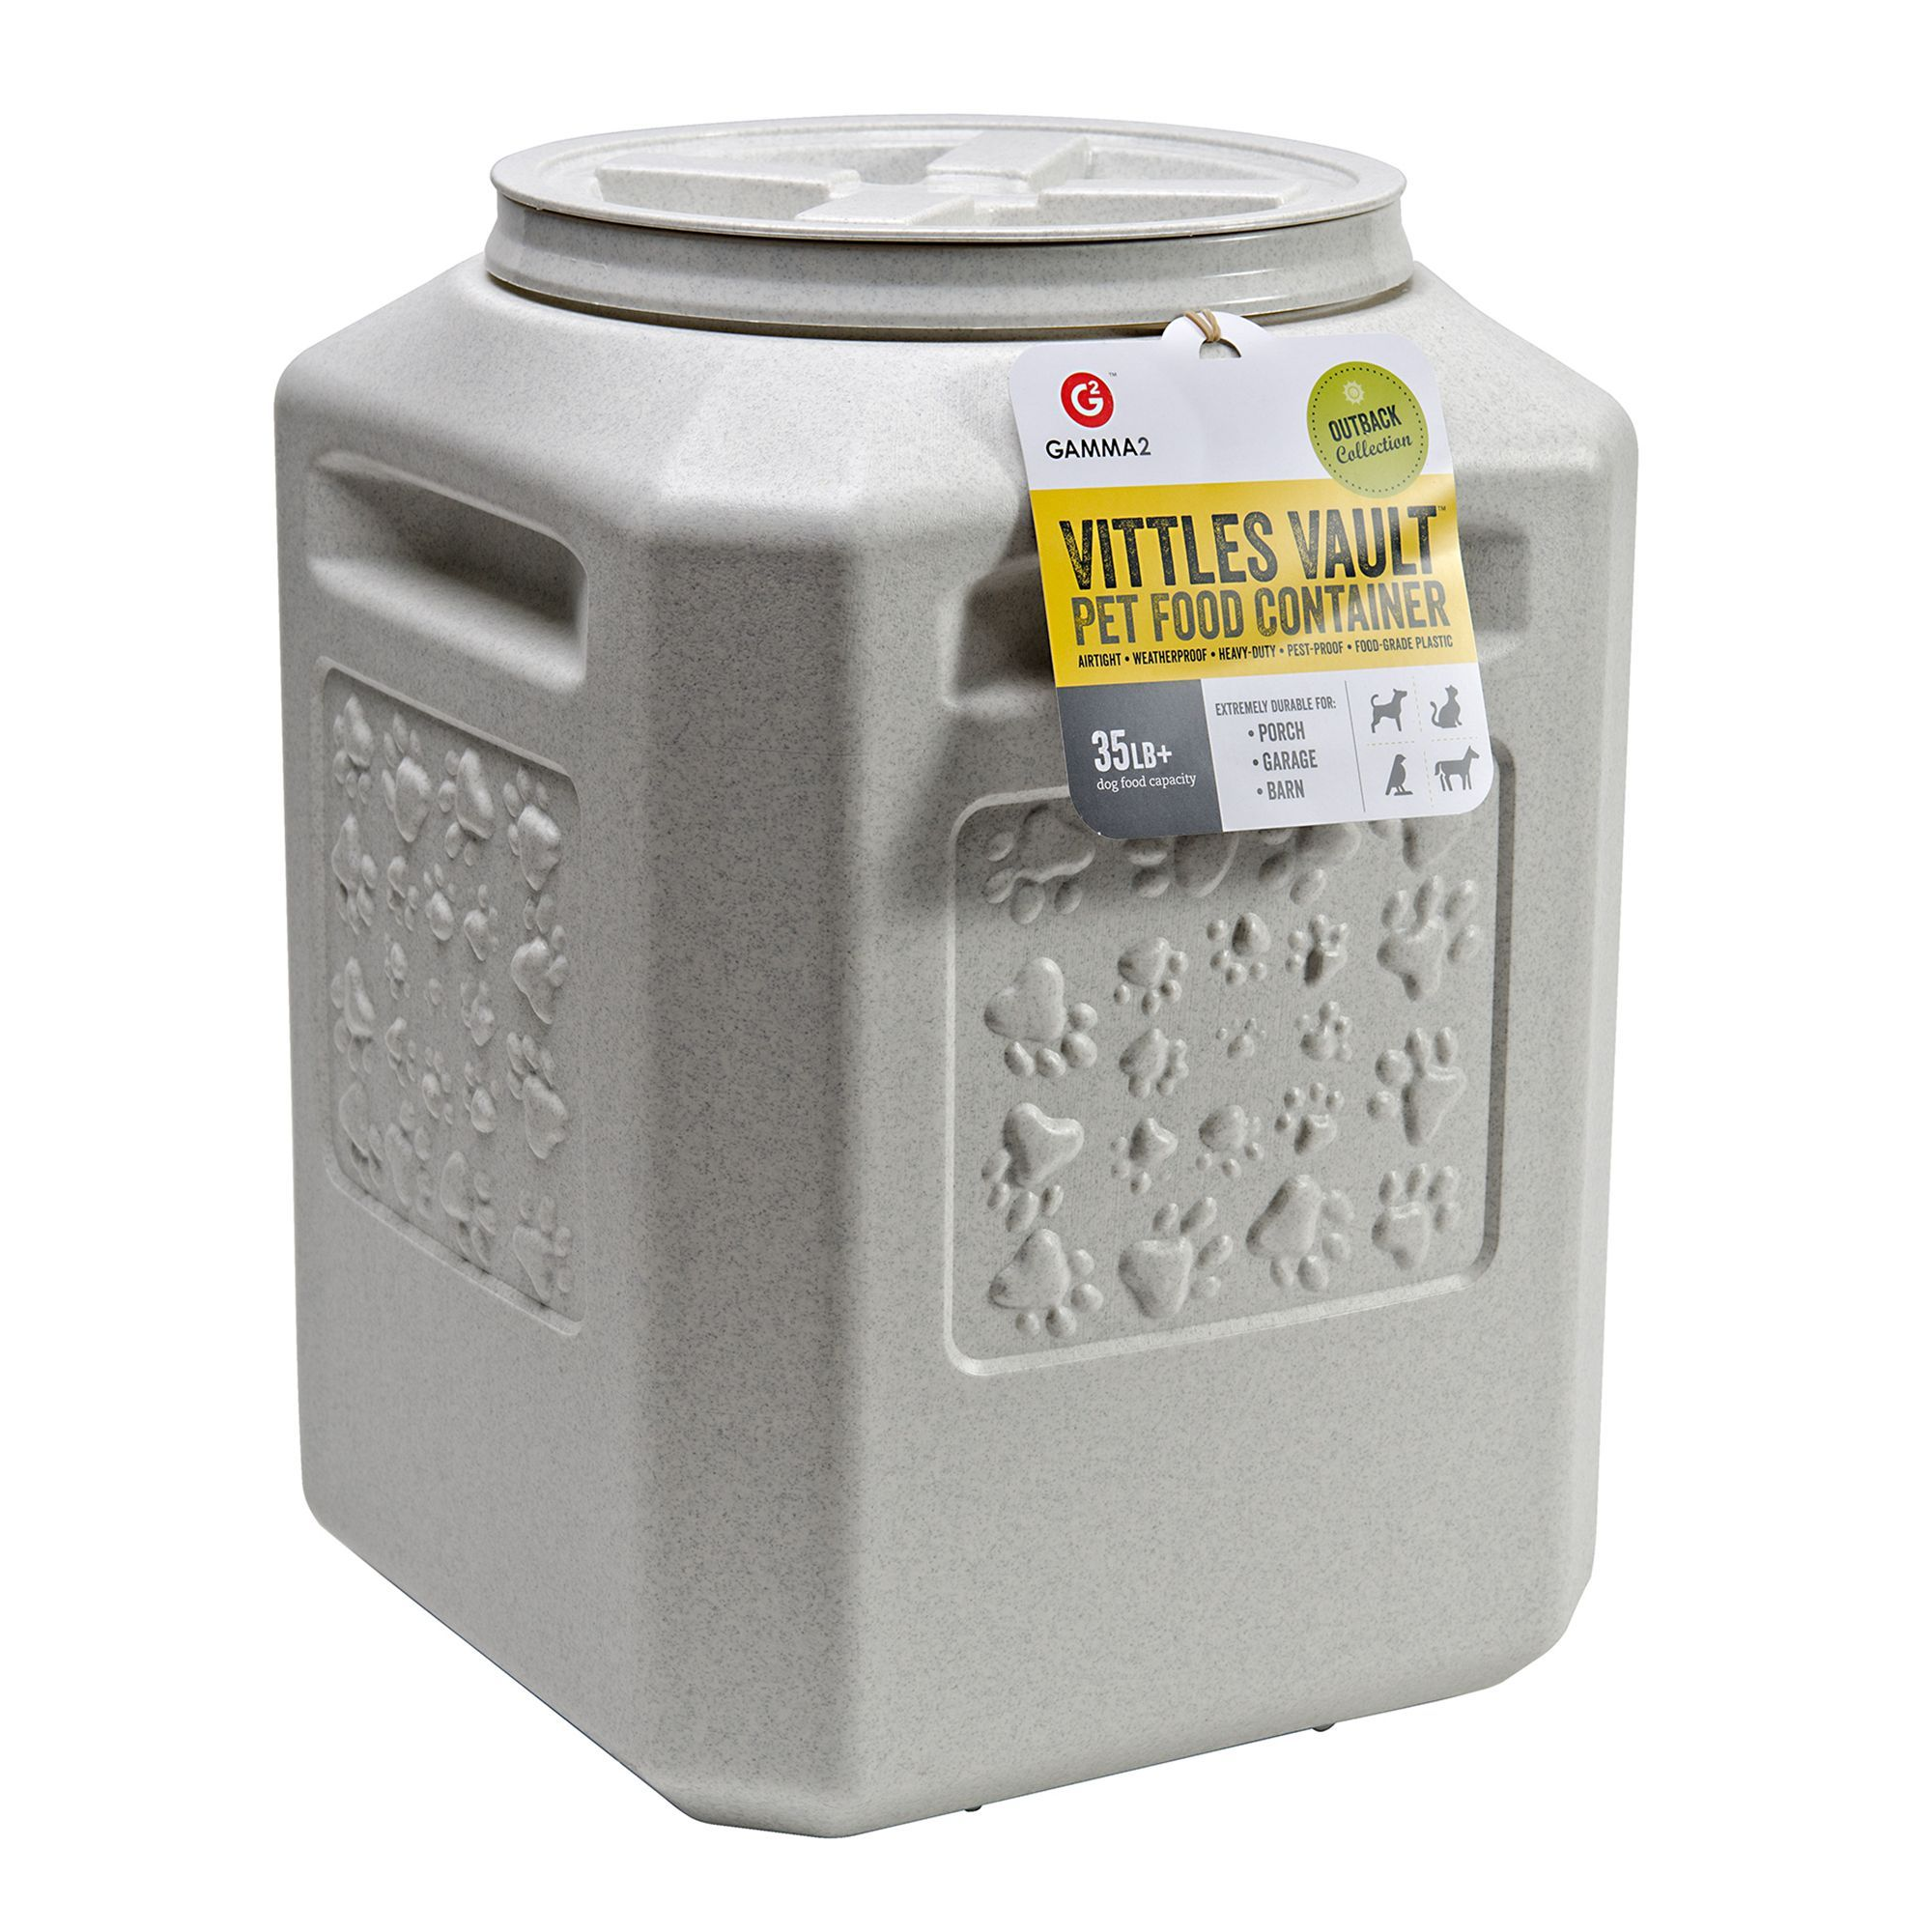 Vittles Vault By Gamma2 Outback Paw Print Pet Food Container Size